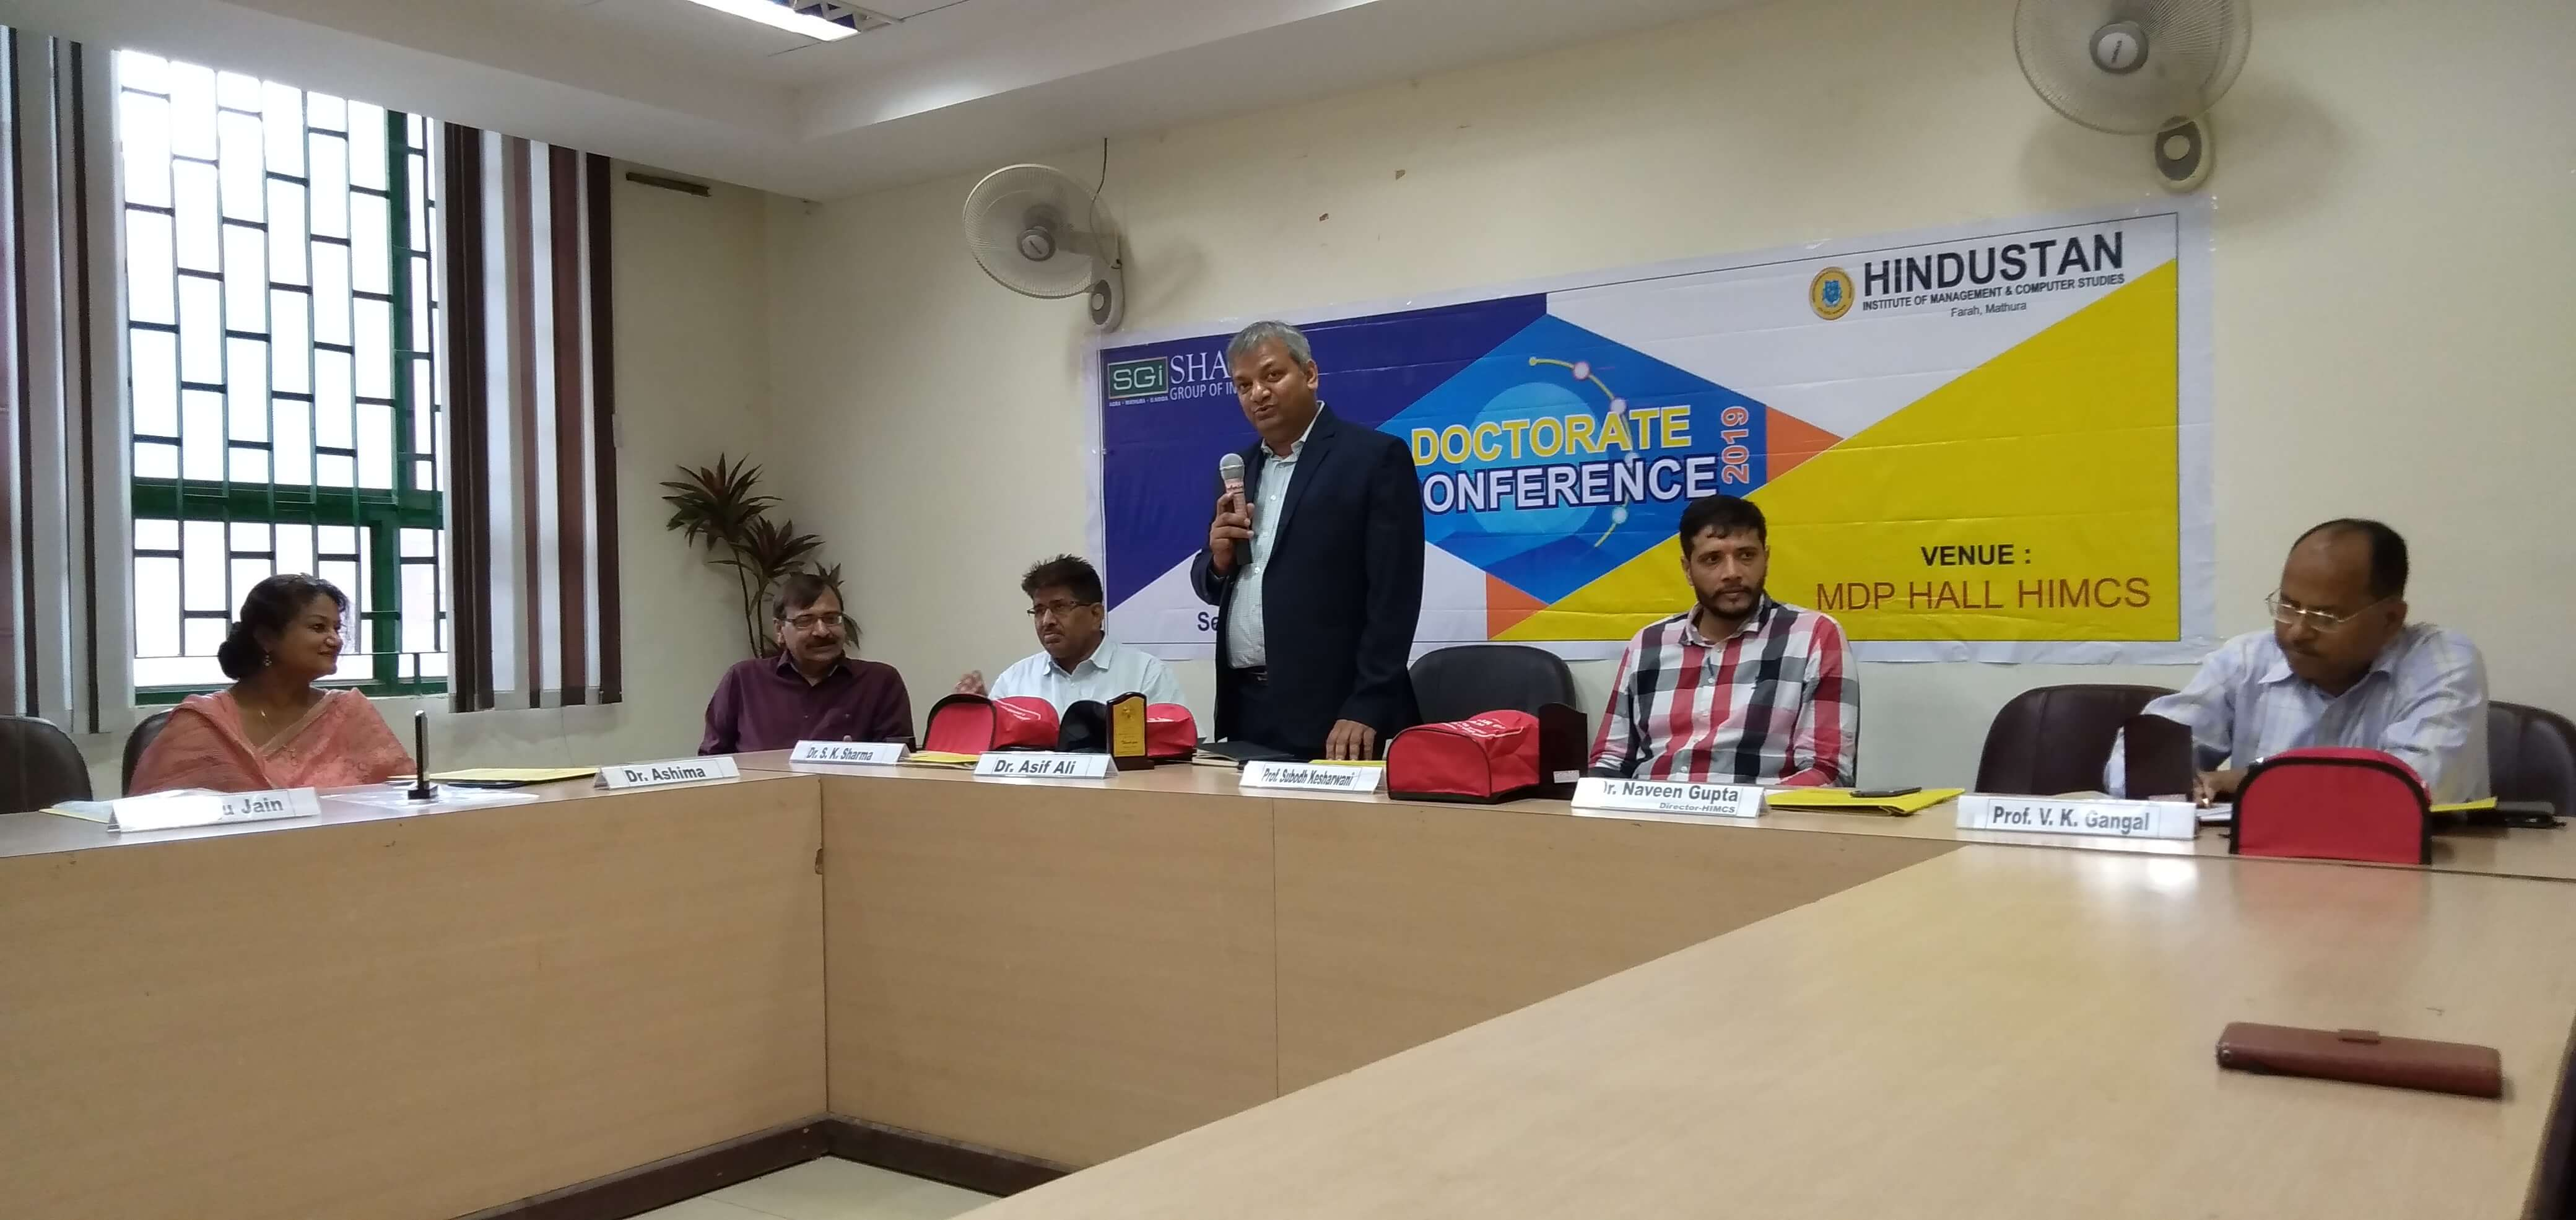 Doctoral Conference